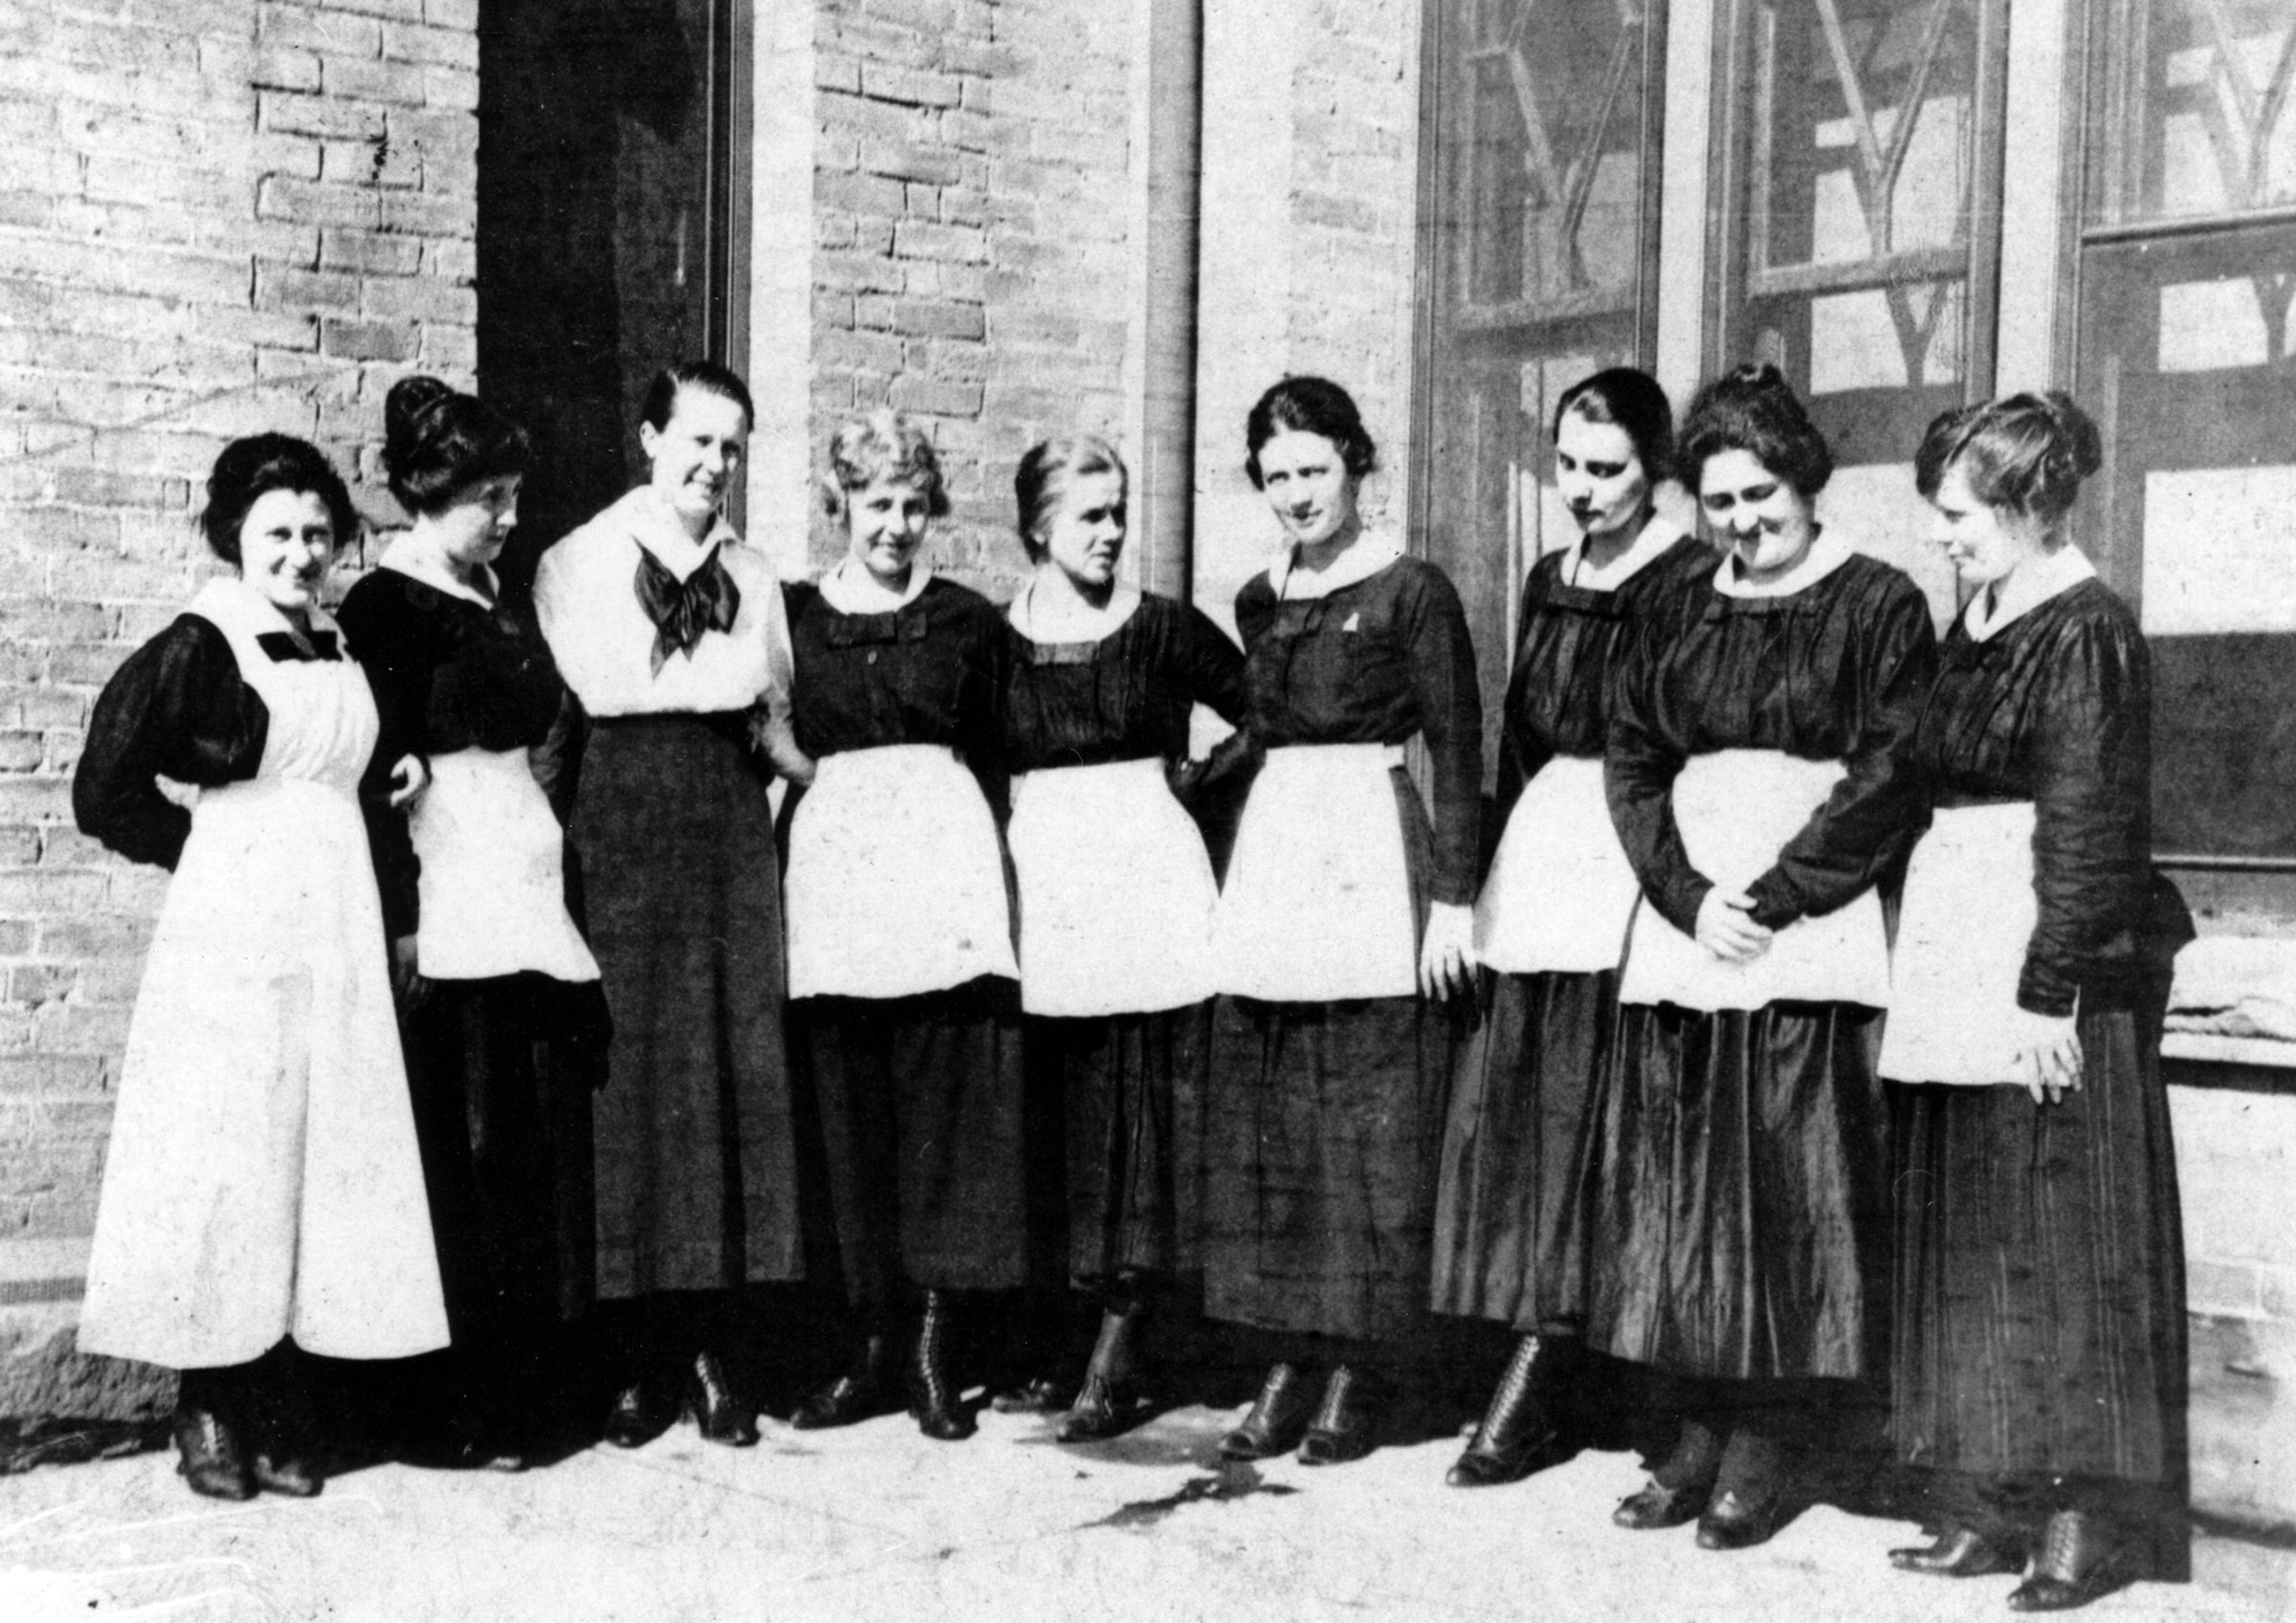 harvey girls At the age of 15, fred harvey left his native england for the united states upon his arrival in new york city, mr harvey began working in the restaurant business in new york.